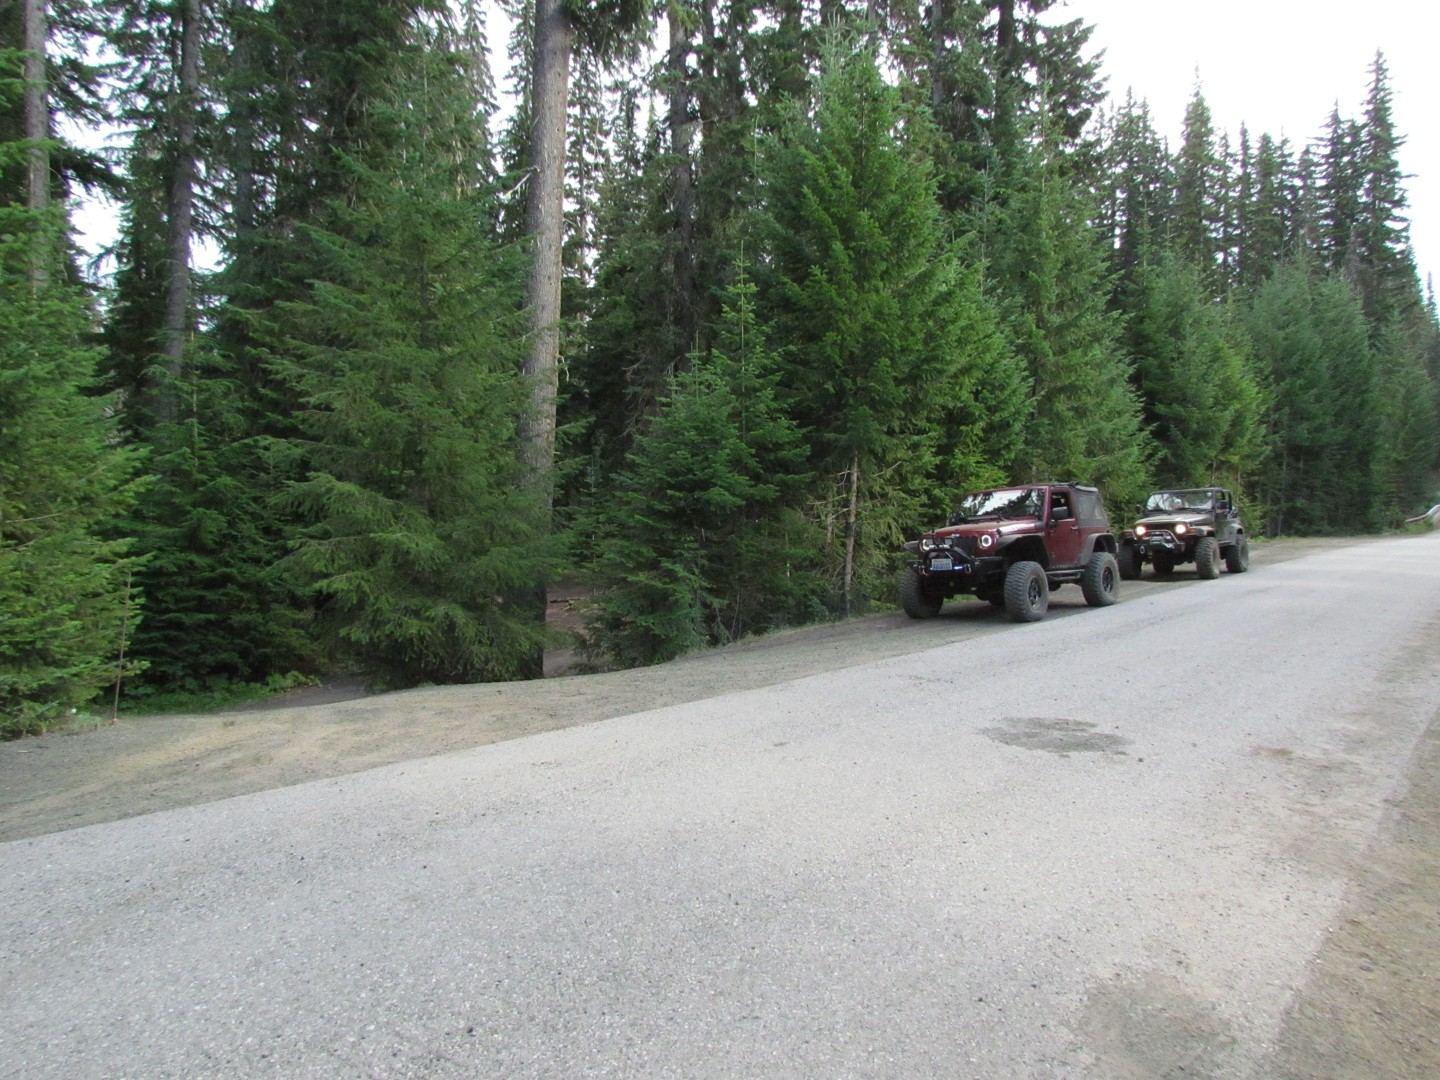 Naches Trail - Waypoint 21: Trail intersection / Turn right